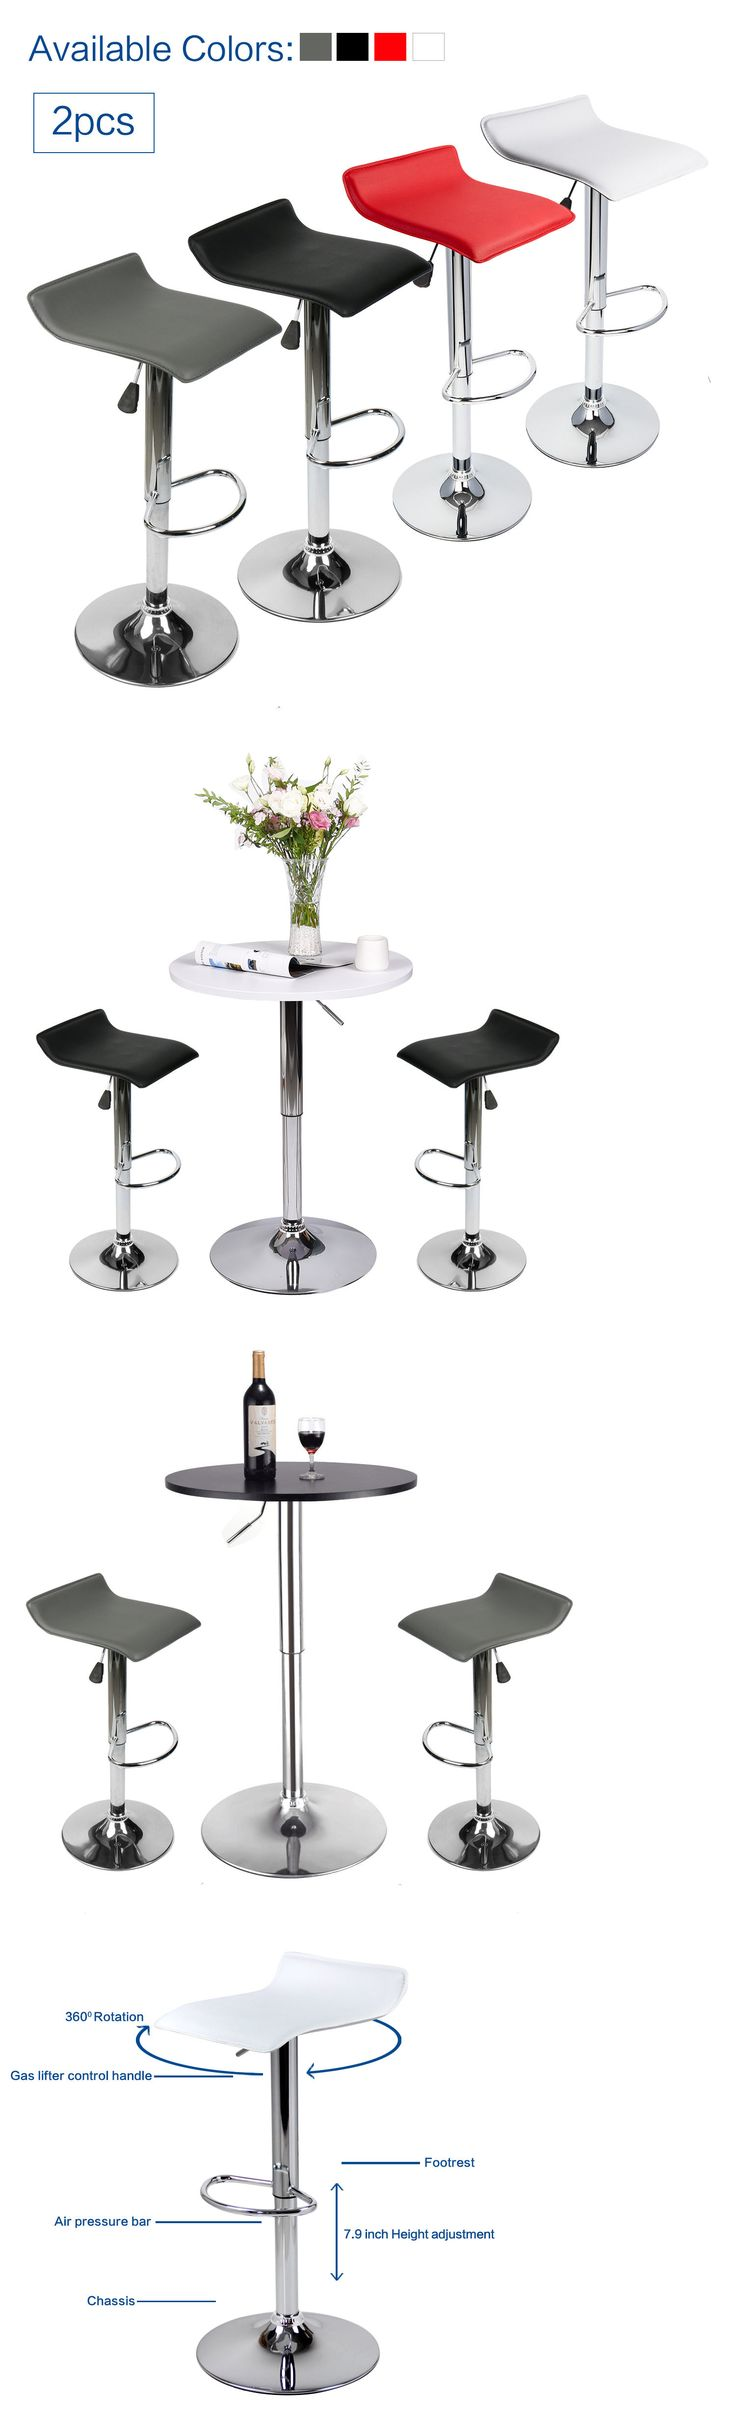 Bar Stools 153928: Modern Set Of 2 Bar Stools Leather Adjustable Swivel Pub Chair Table Multi Color -> BUY IT NOW ONLY: $43.99 on eBay!